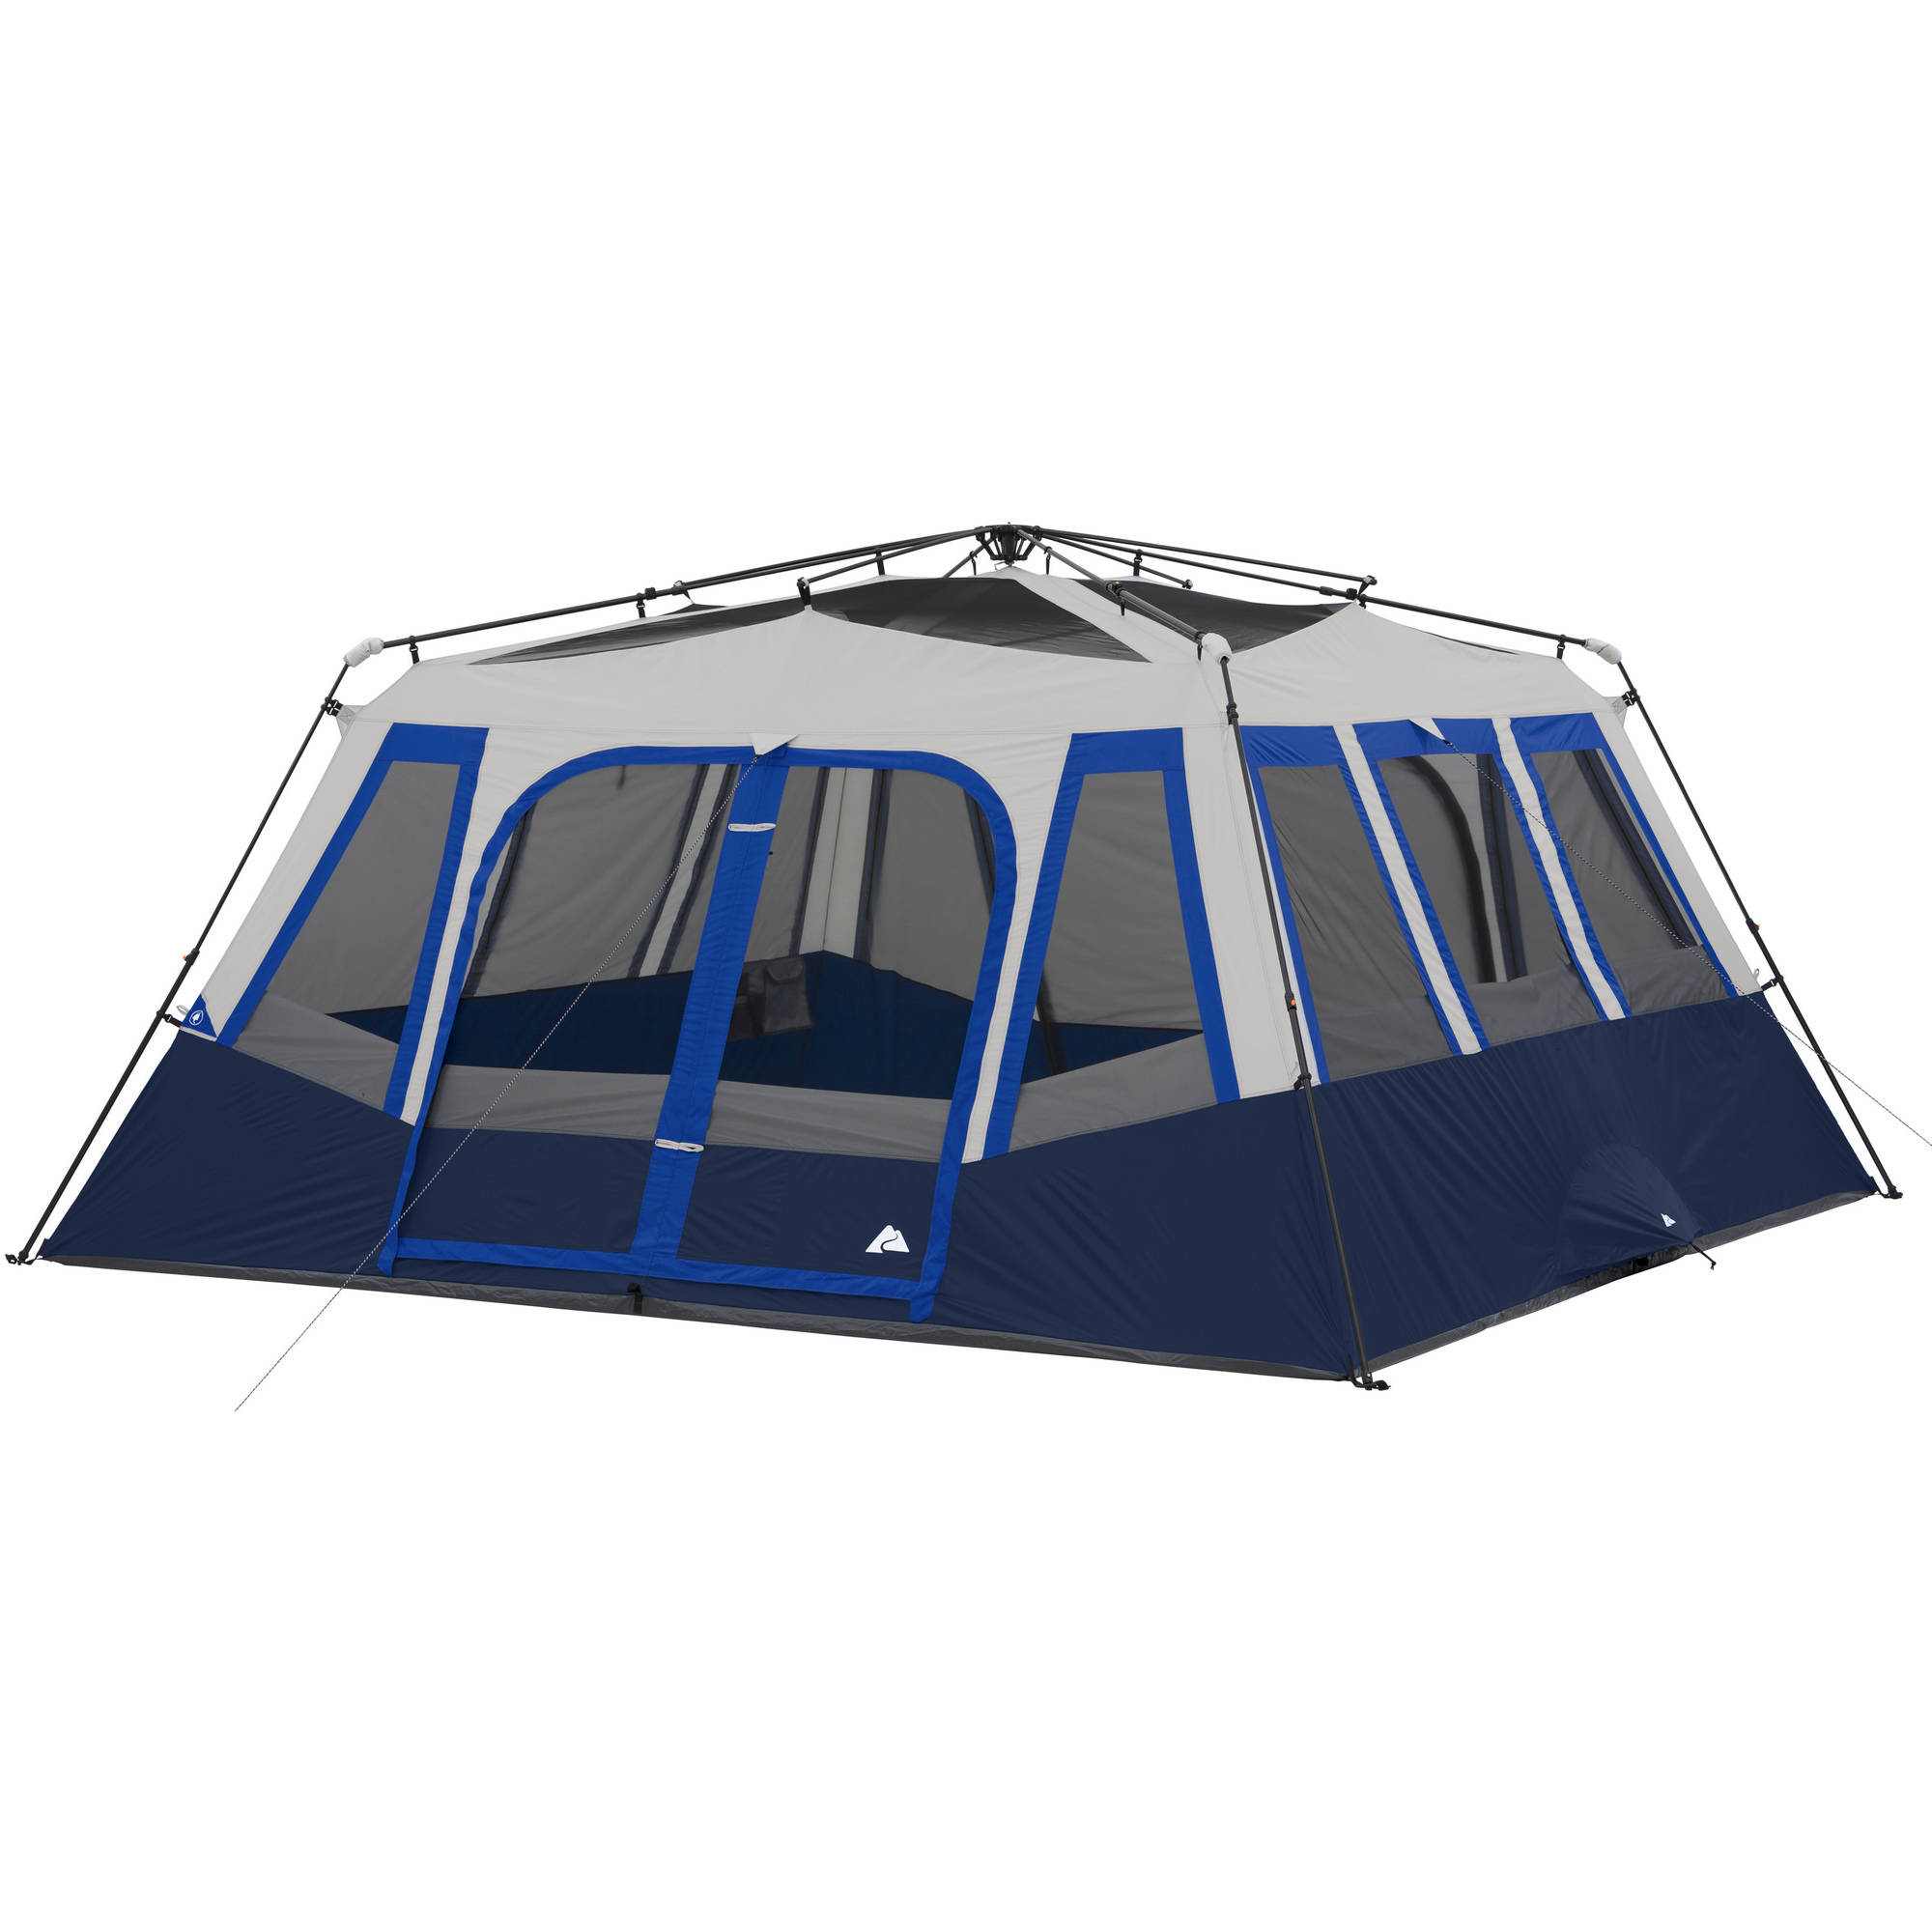 Incroyable Ozark Trail 14 Person 2 Room Instant Cabin Tent   Walmart.com